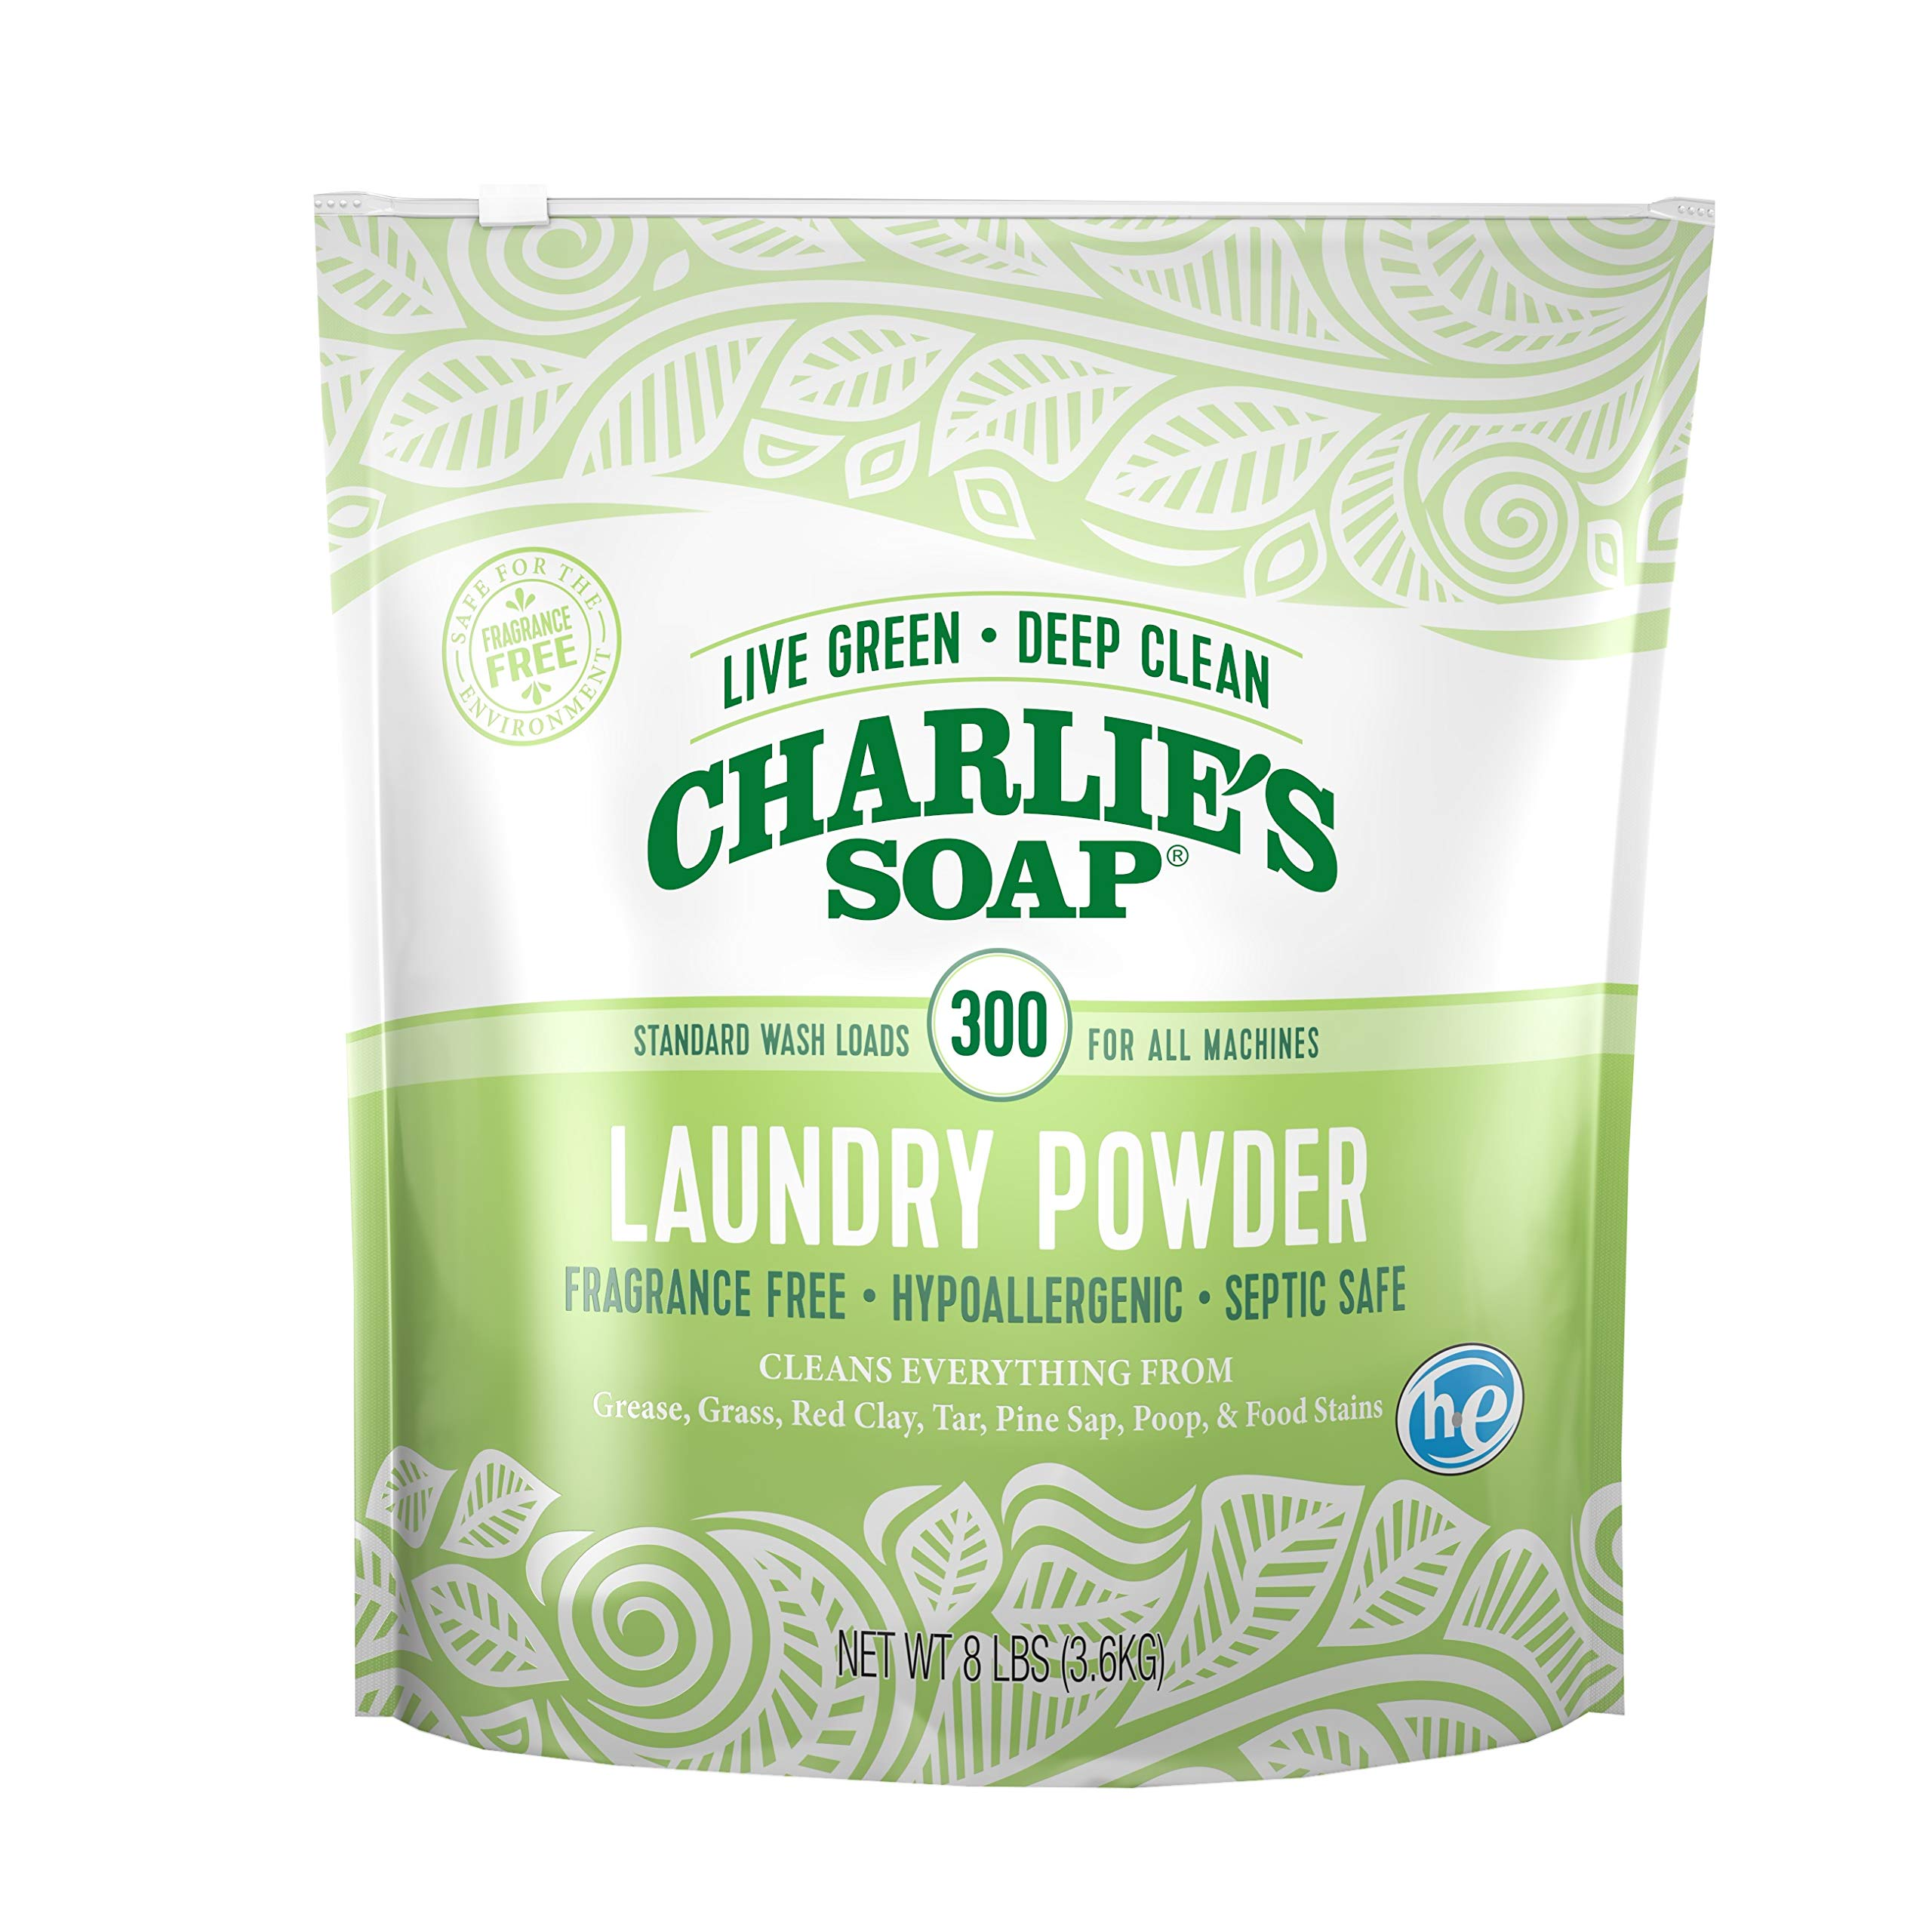 Charlie's Soap - Fragrance Free Powder Laundry Detergent - 300 Loads (8 lbs, 1 Pack) by Charlie's Soap (Image #1)